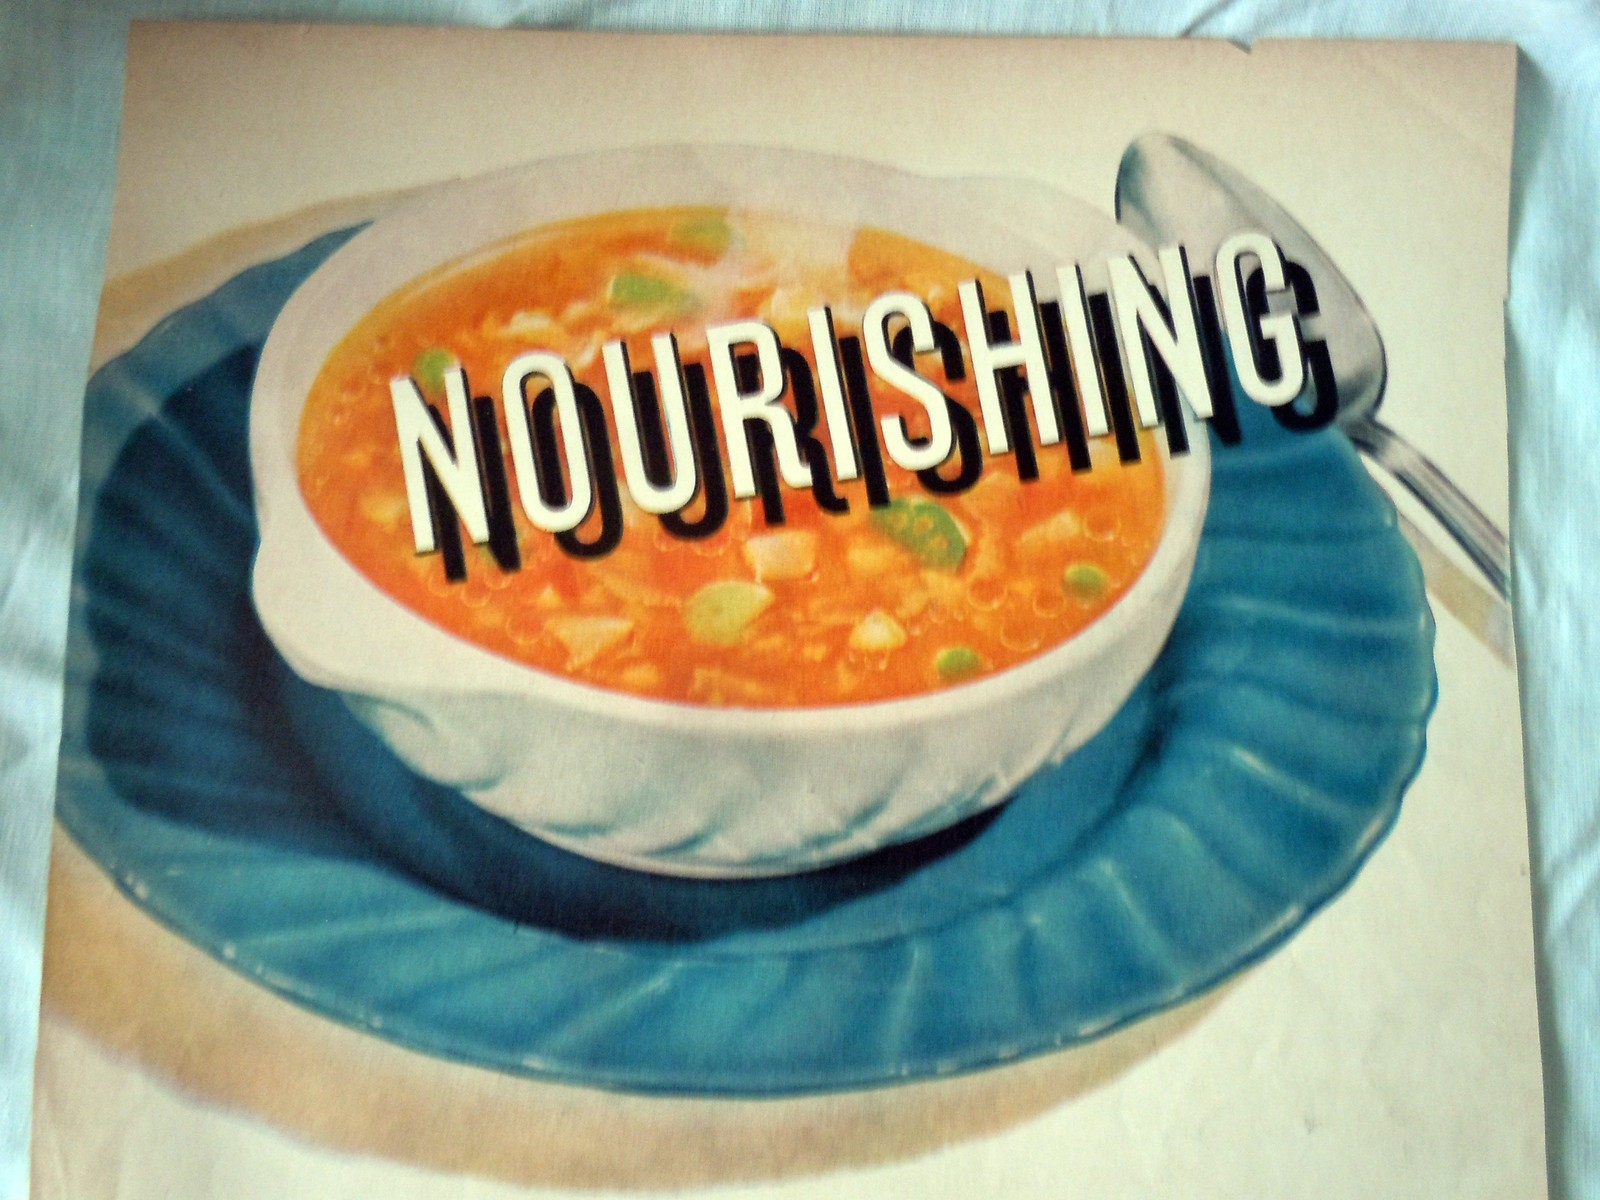 Campbell's Vegetable Soup Nourishing Advertising Print Ad Art 1940s image 2